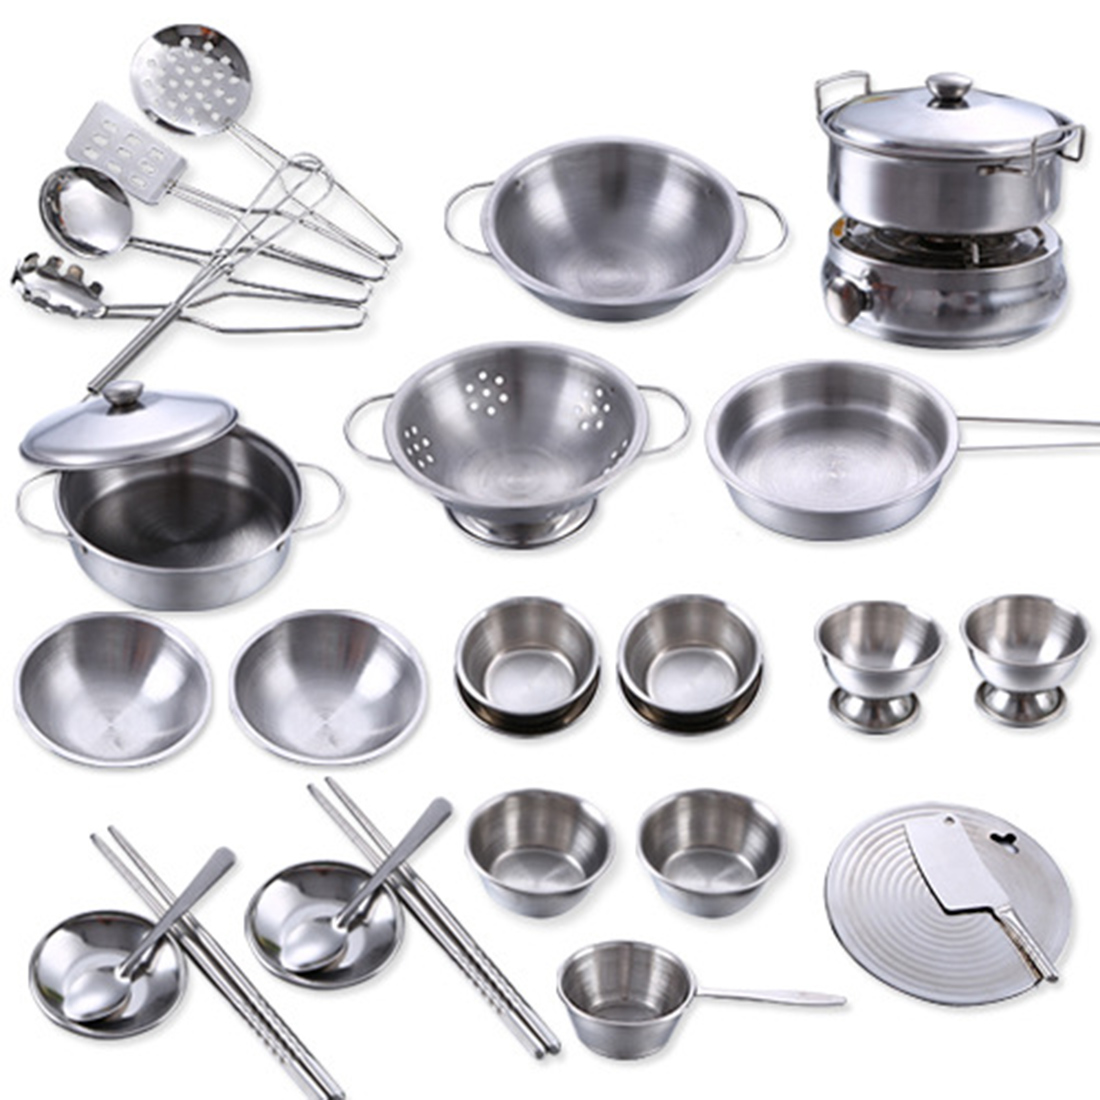 Surwish 32Pcs Stainless Steel Kids House Kitchen Toy Cooking Cookware Children Pretend & Play Kitchen Playset - Silver